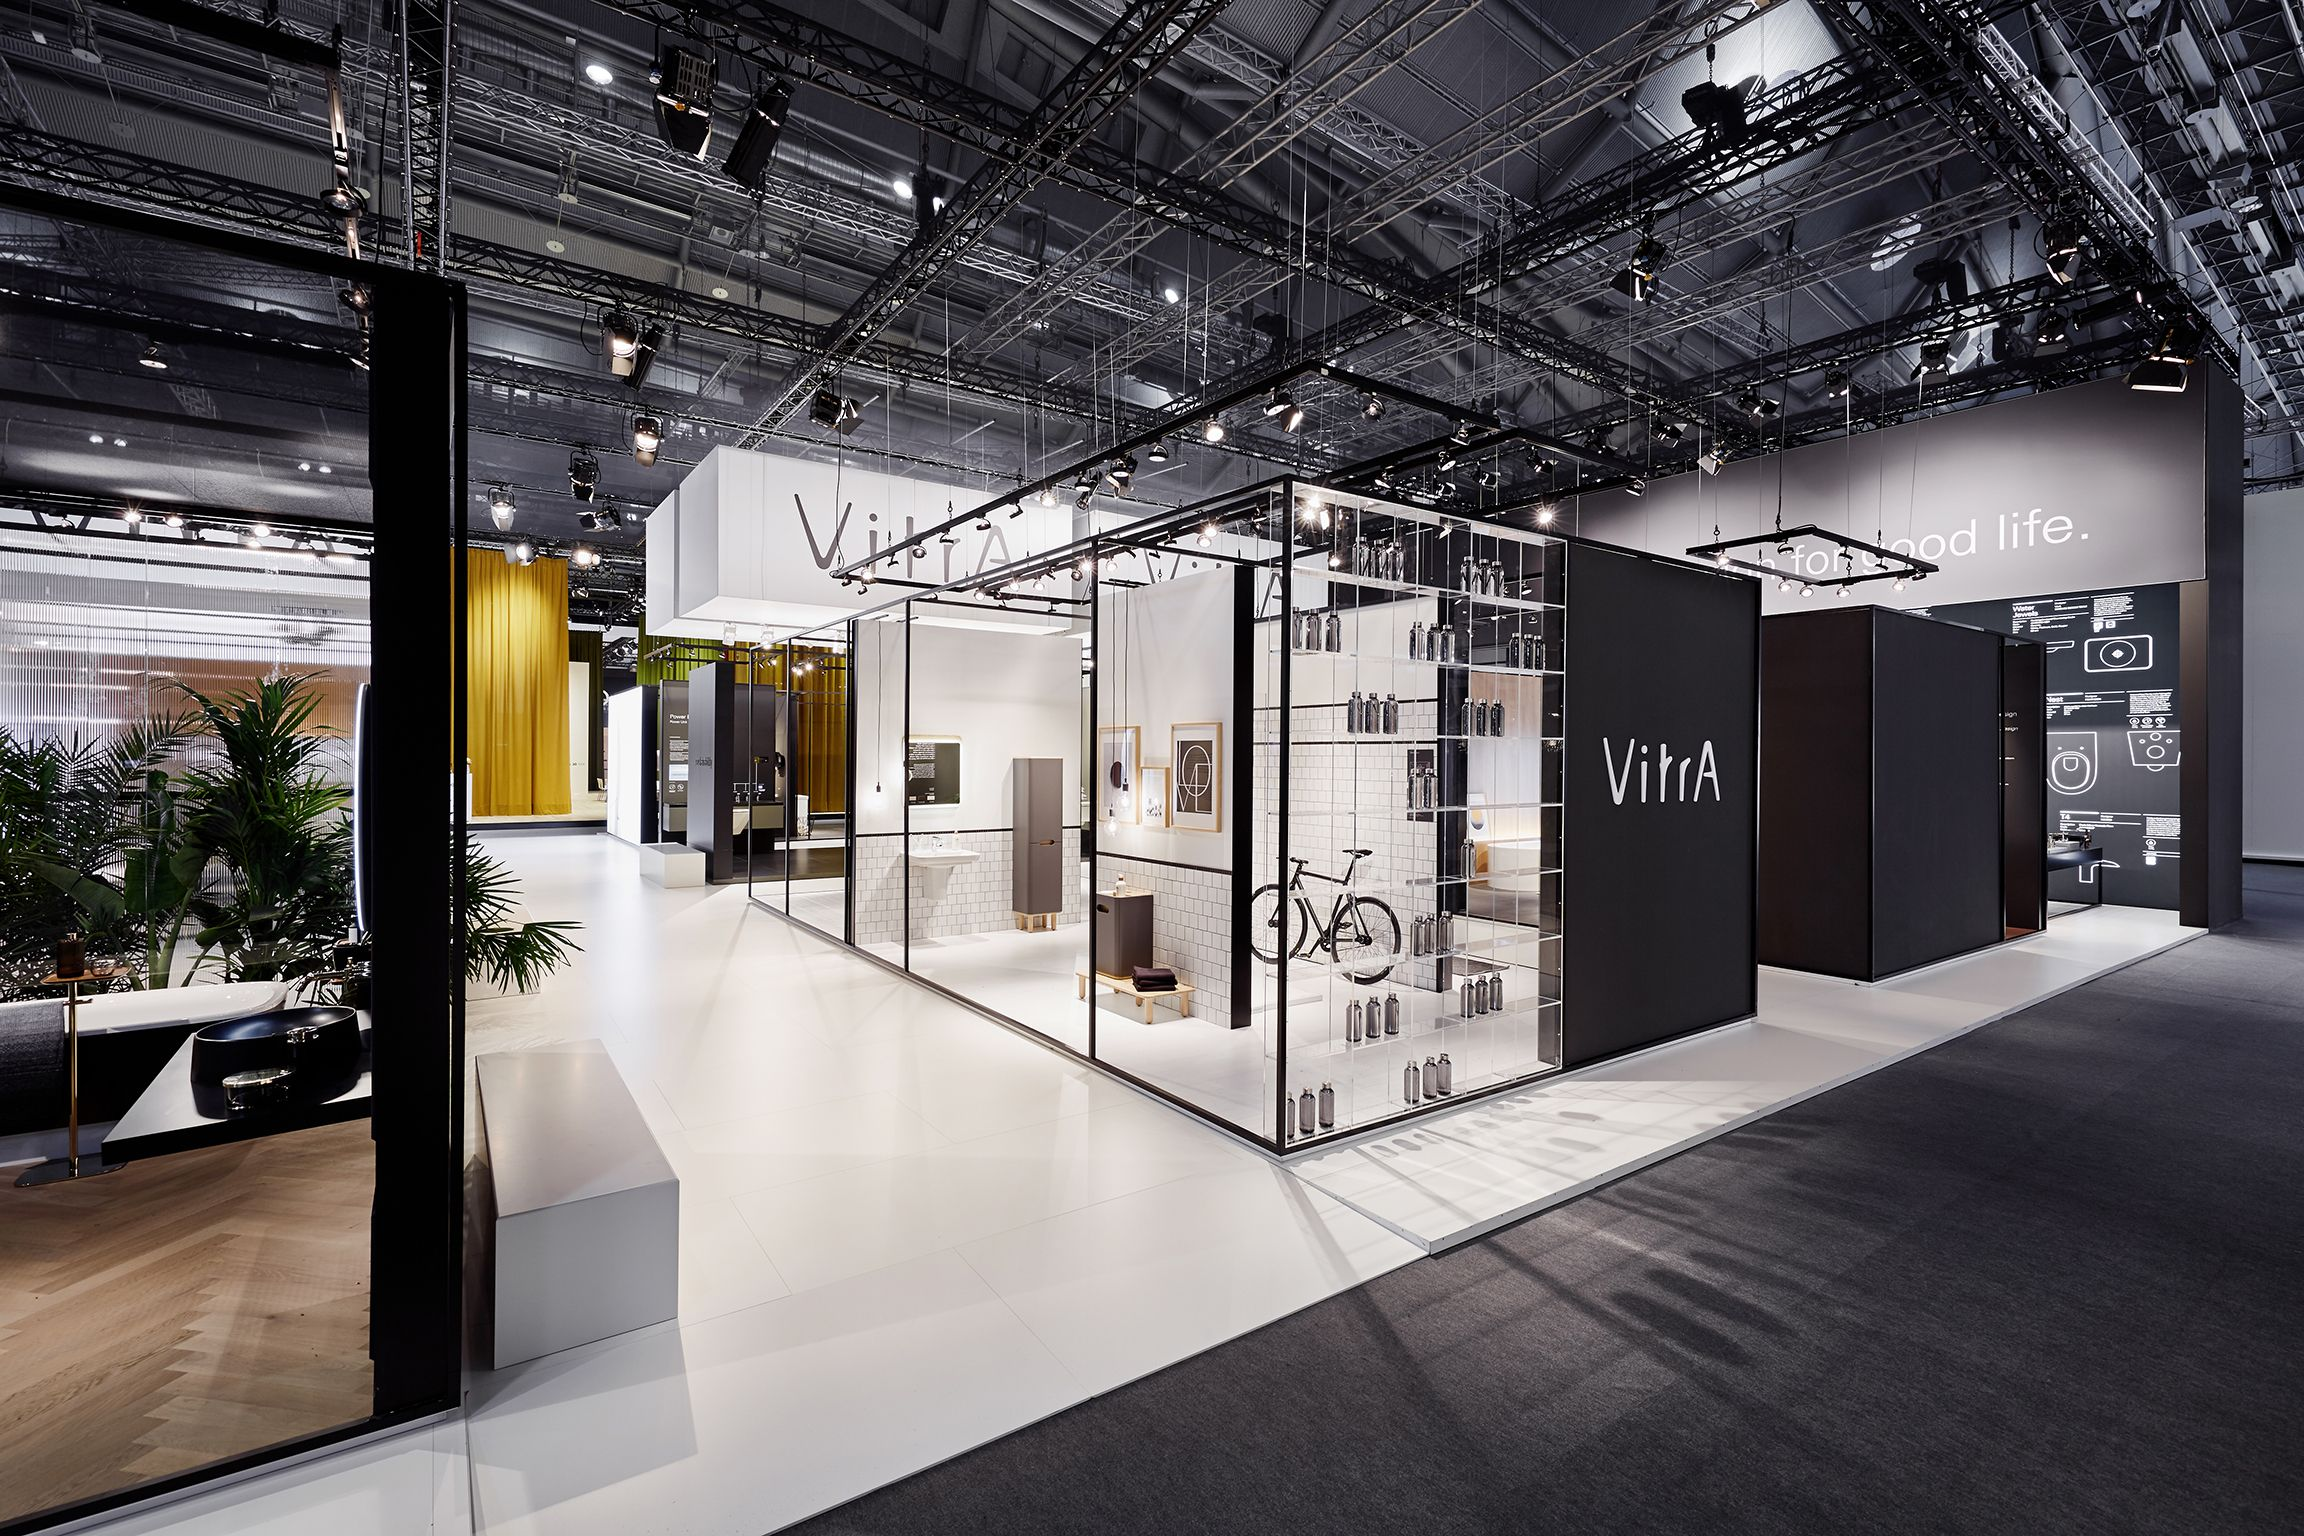 vitra ish frankfurt 2017 vitra ish pinterest. Black Bedroom Furniture Sets. Home Design Ideas